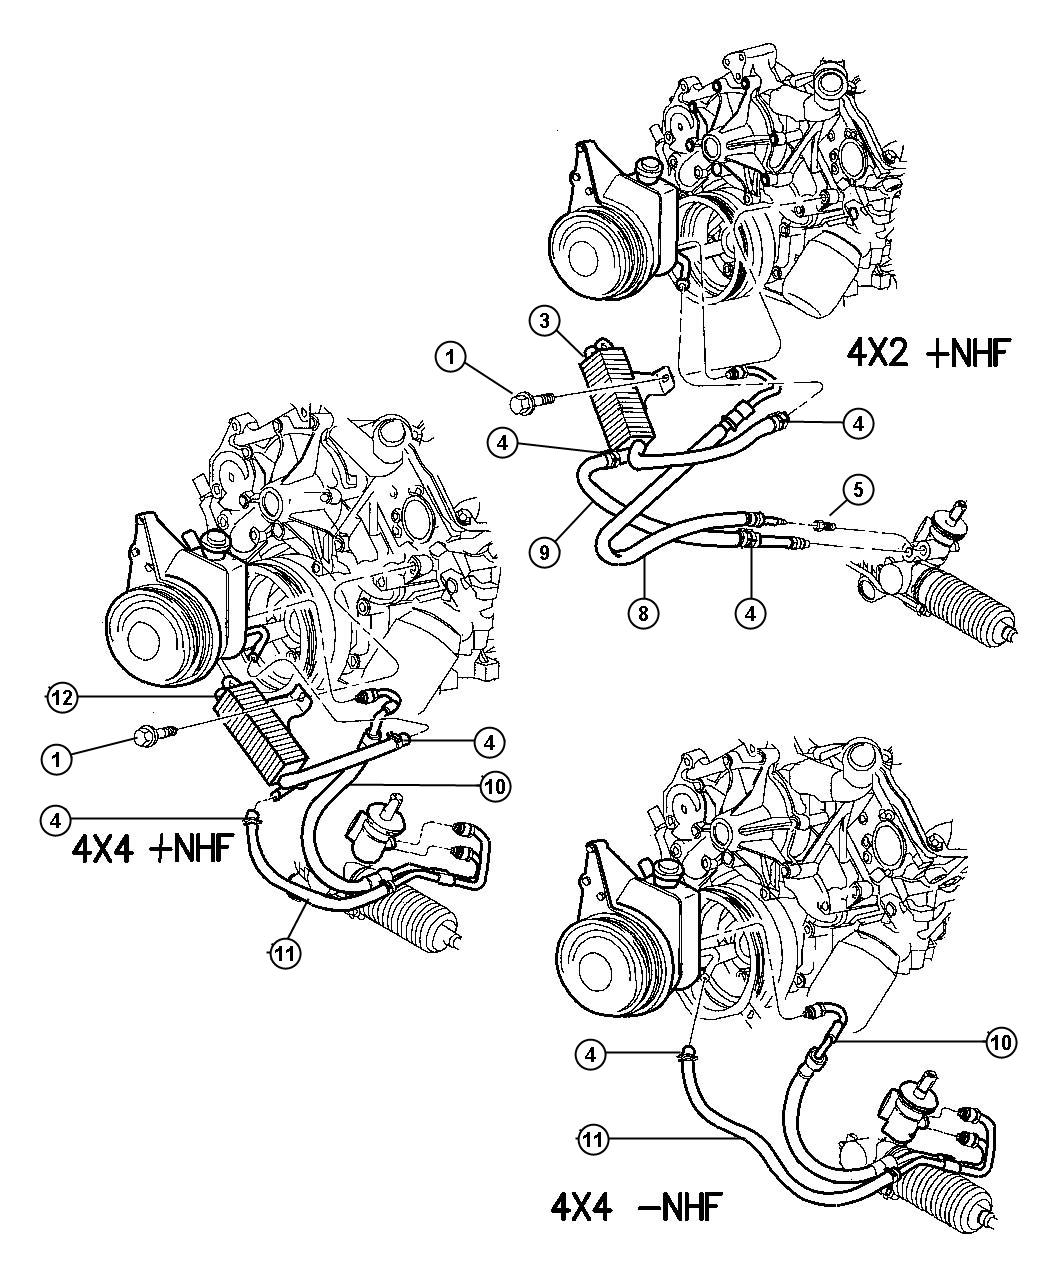 Dodge 3 9 Engine Diagram Exploded Wiring Diagrams Plymouth Parts 89 Get Free Image About 37 2000